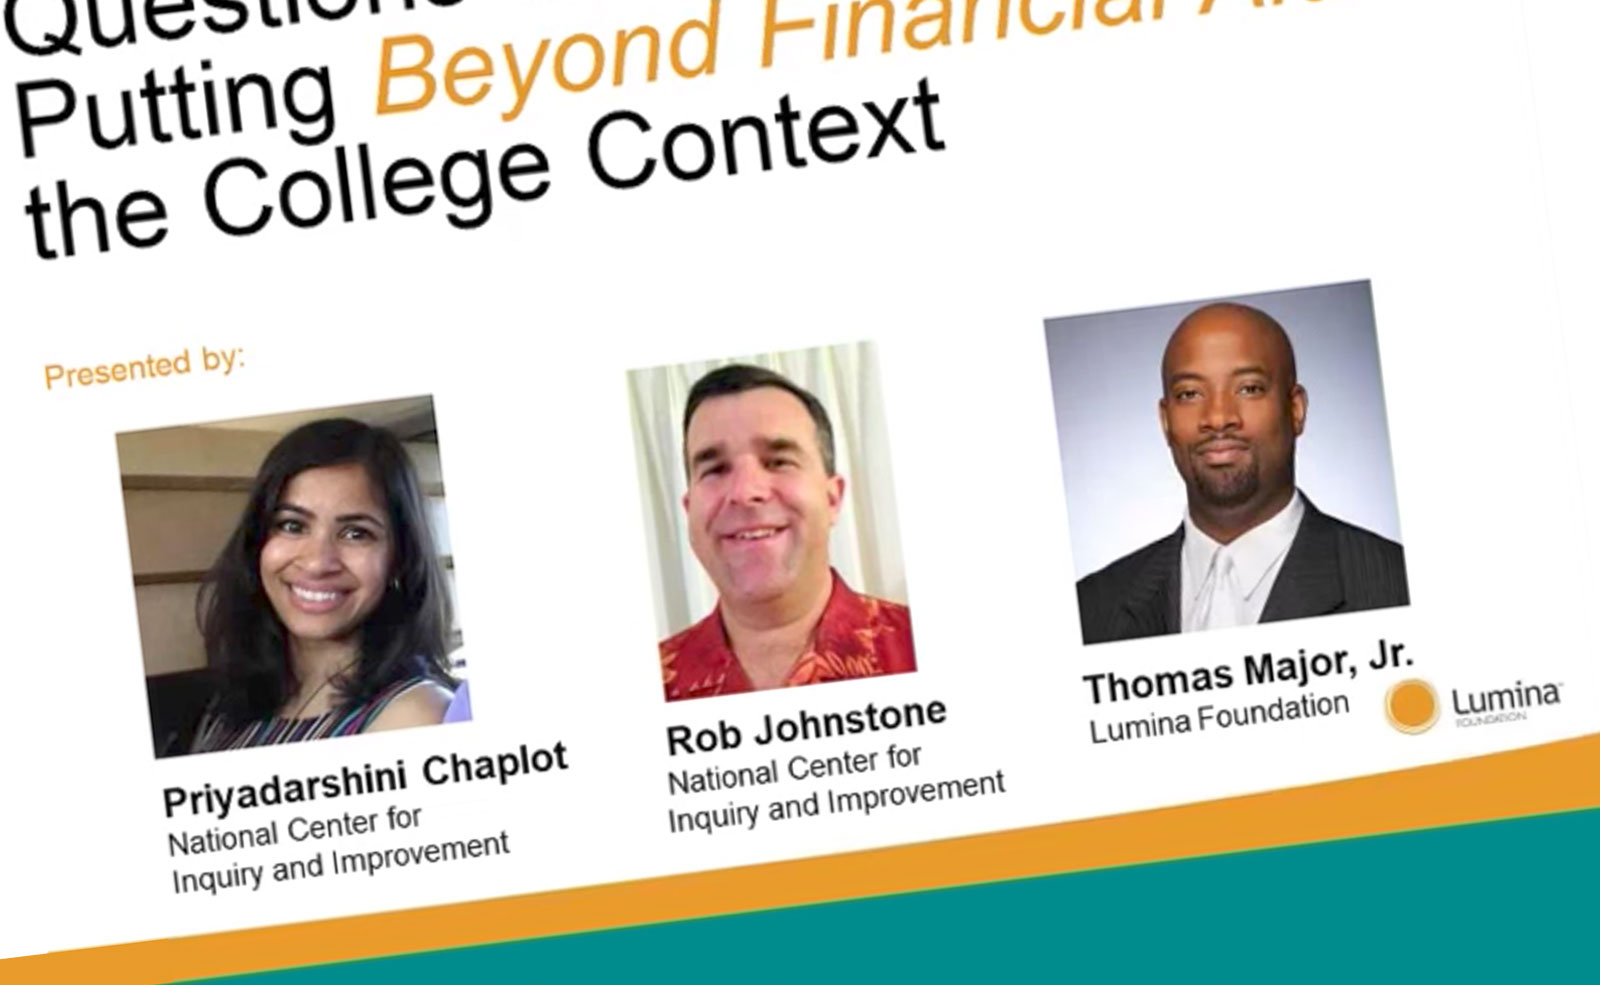 Questions and Answers on Lumina's Beyond Financial Aid Guidebook